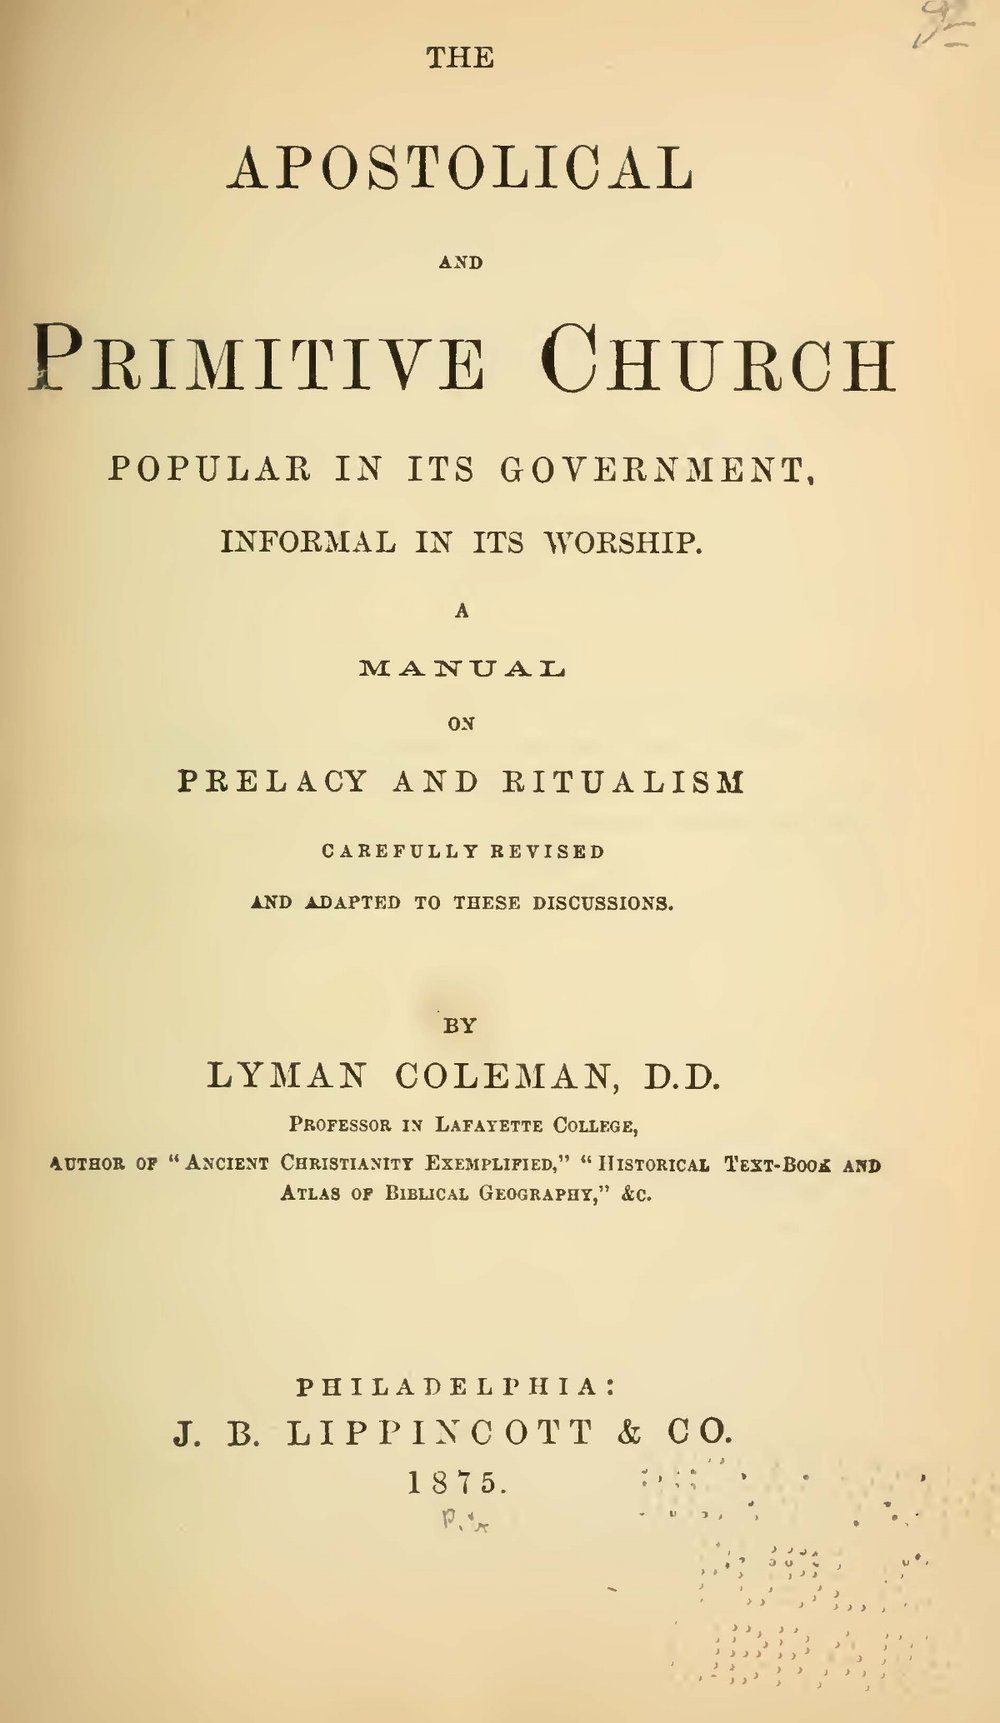 Coleman, Lyman, The Apostolical and Primitive Church Title Page.jpg